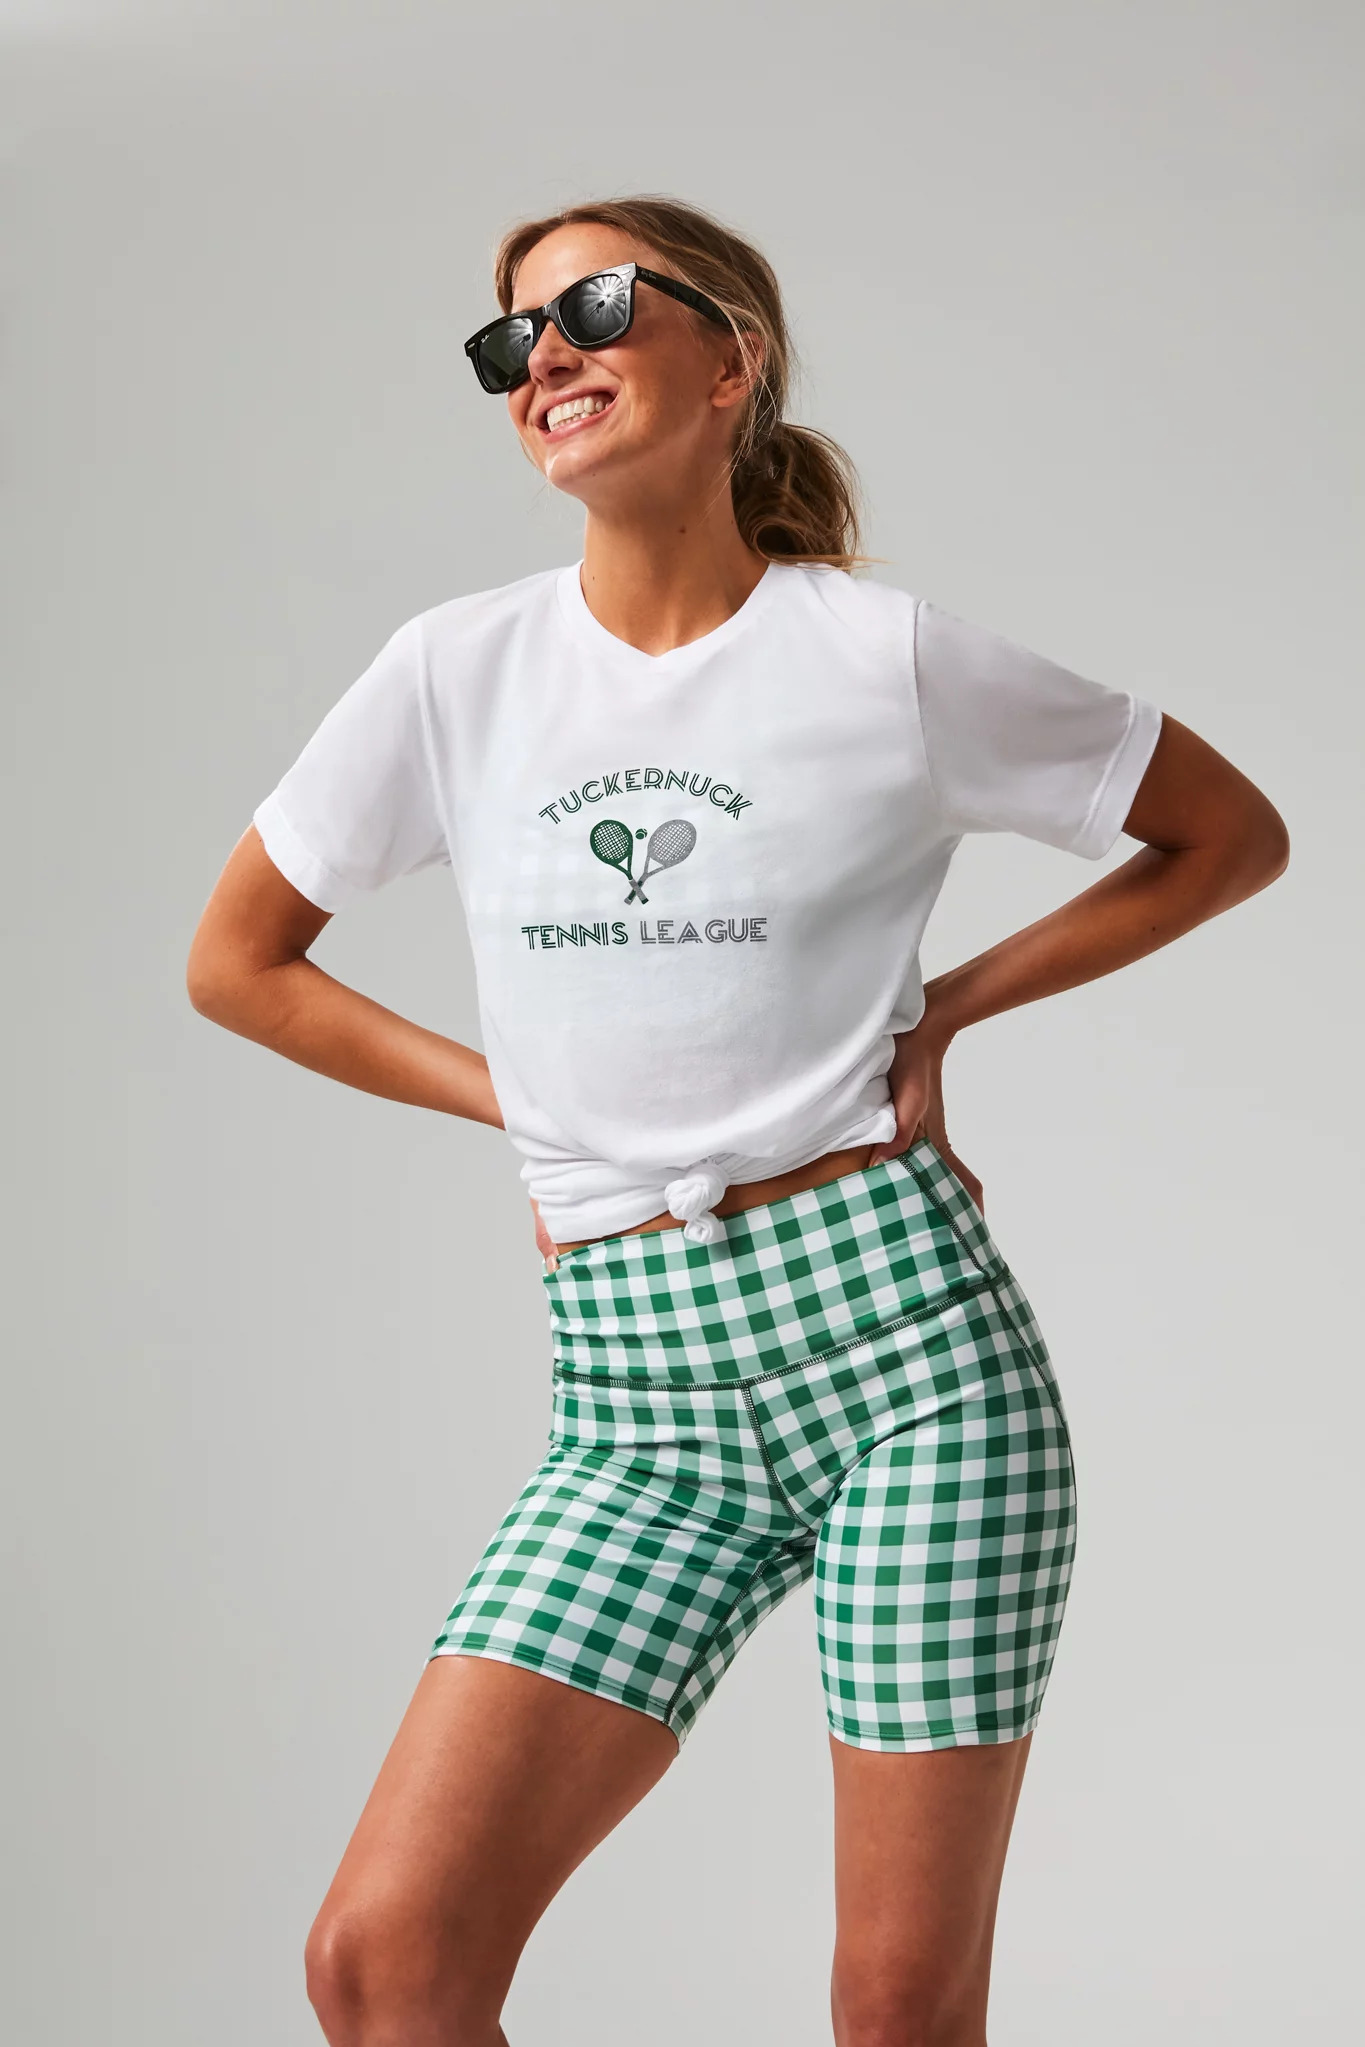 Green Gingham Bike Shorts Tennis Outfit Inspiration